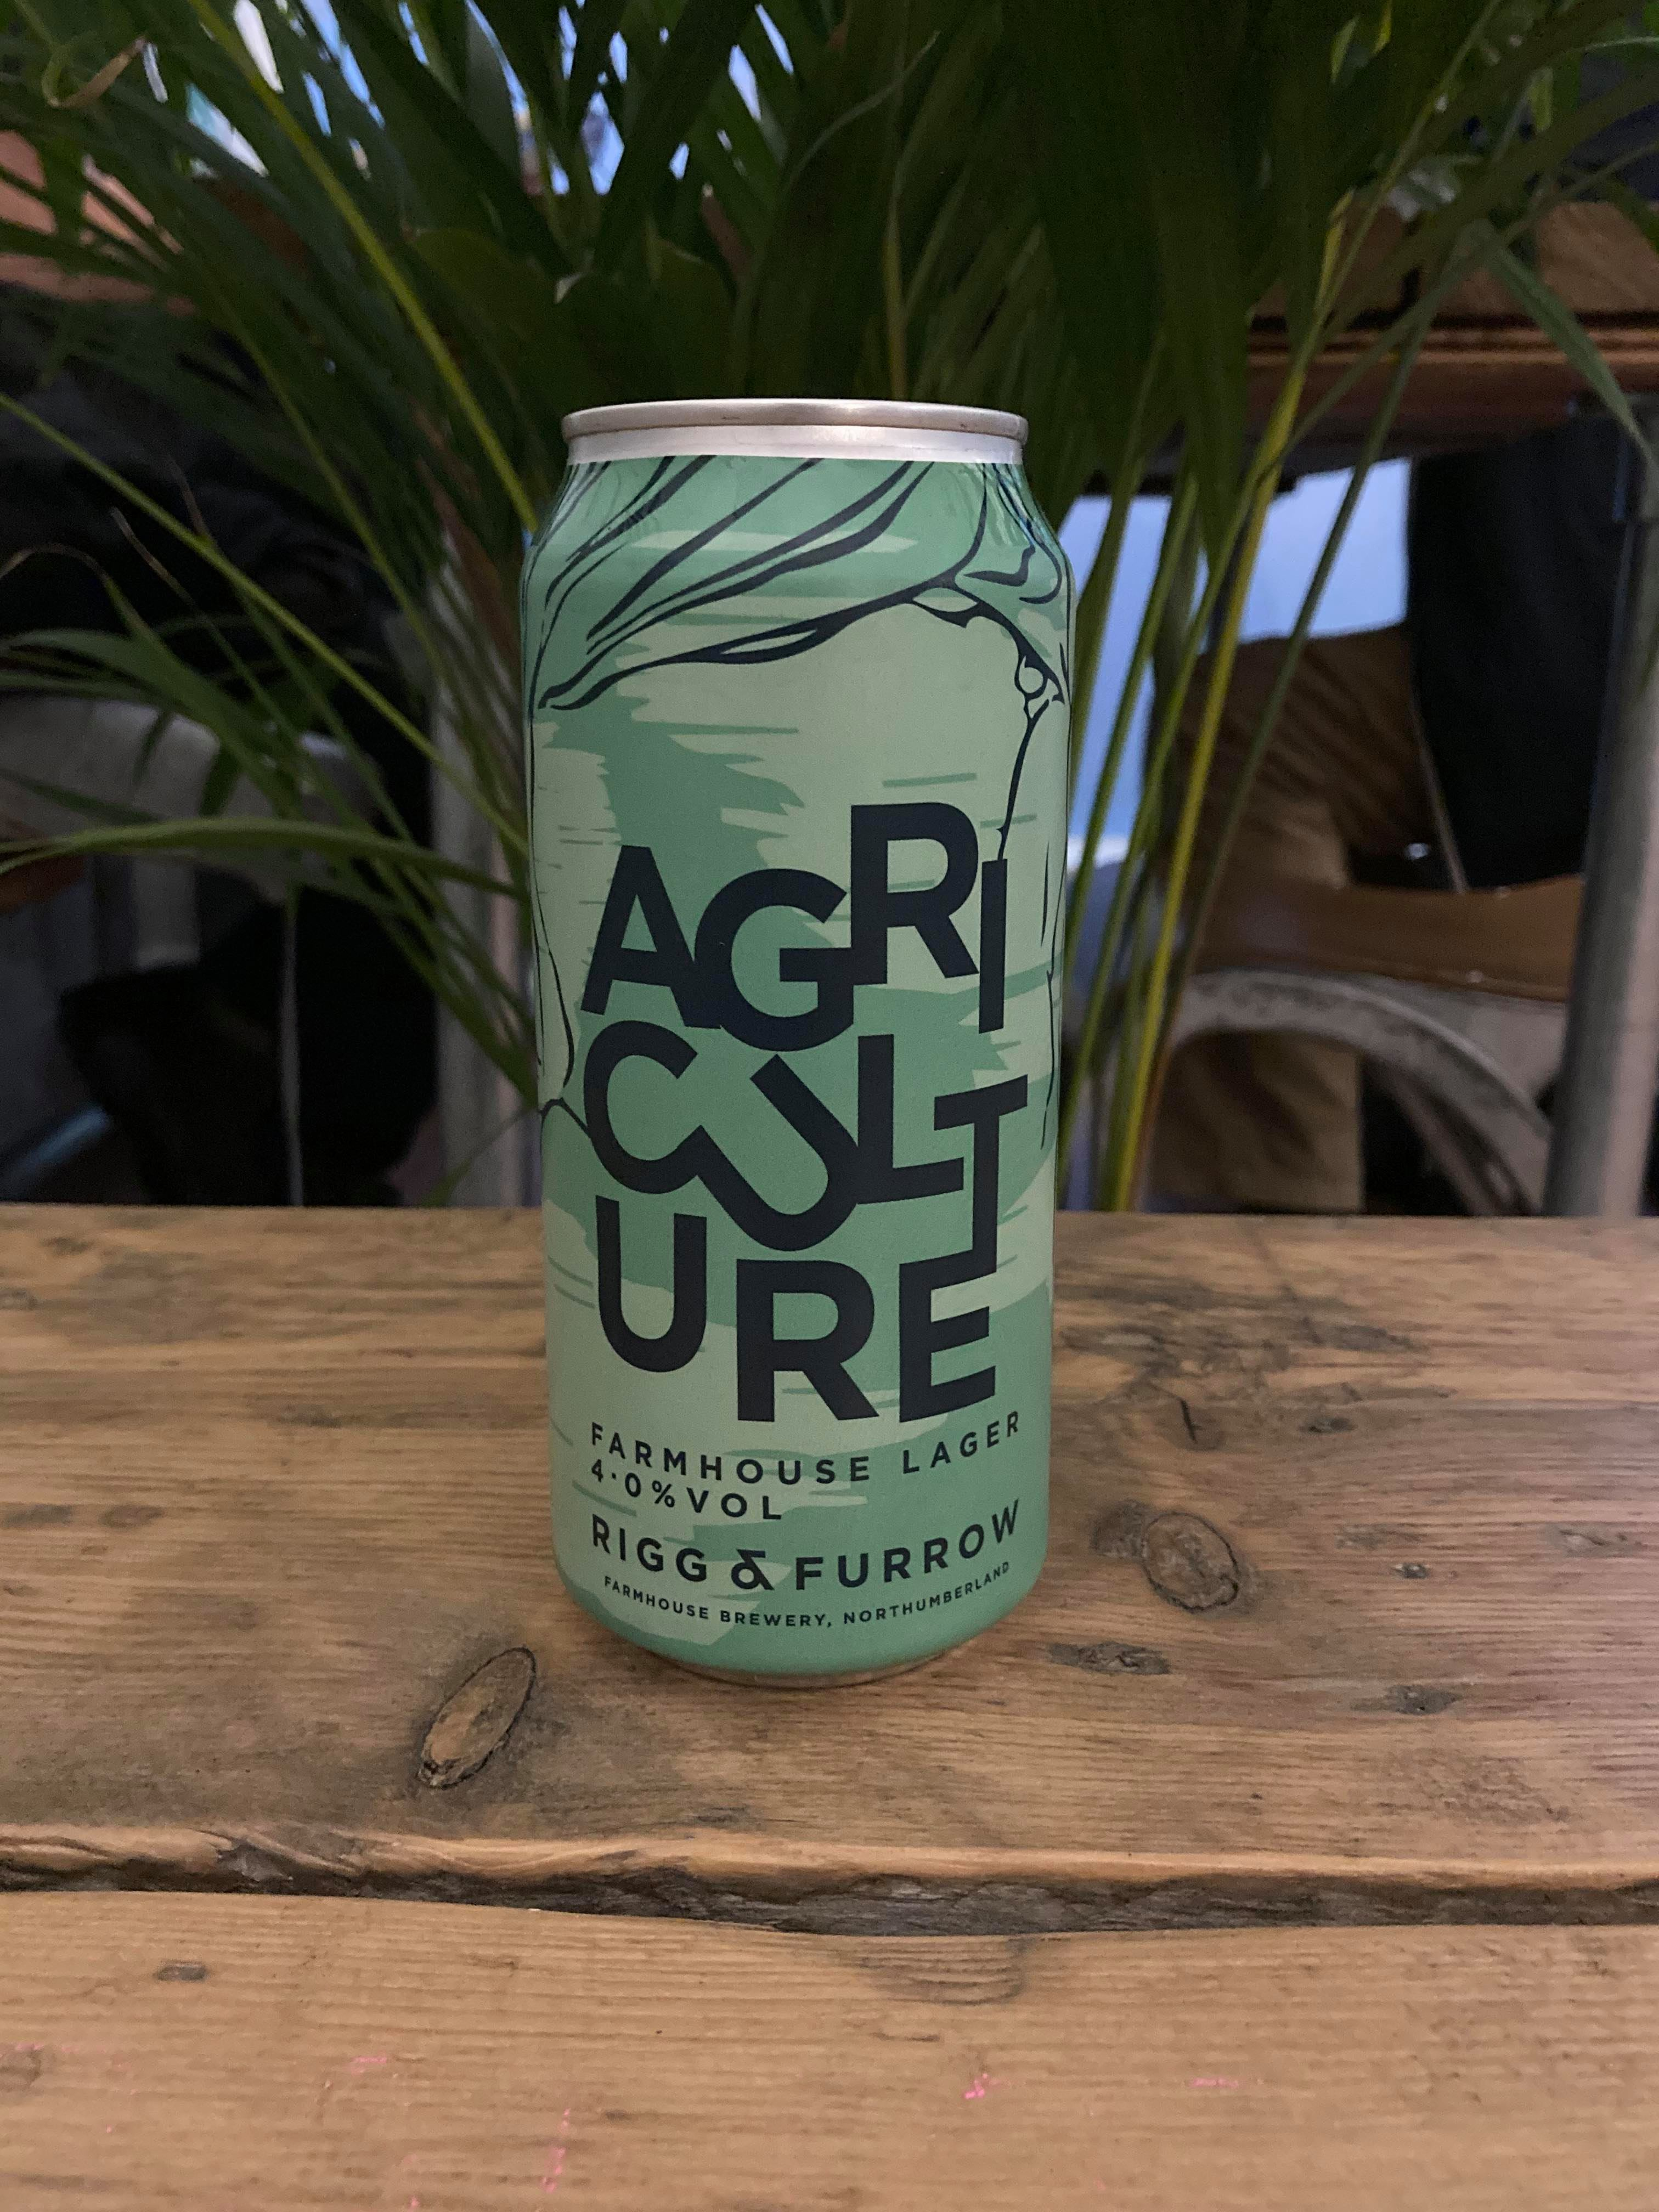 Rigg & Furrow - Agriculture Lager 4%